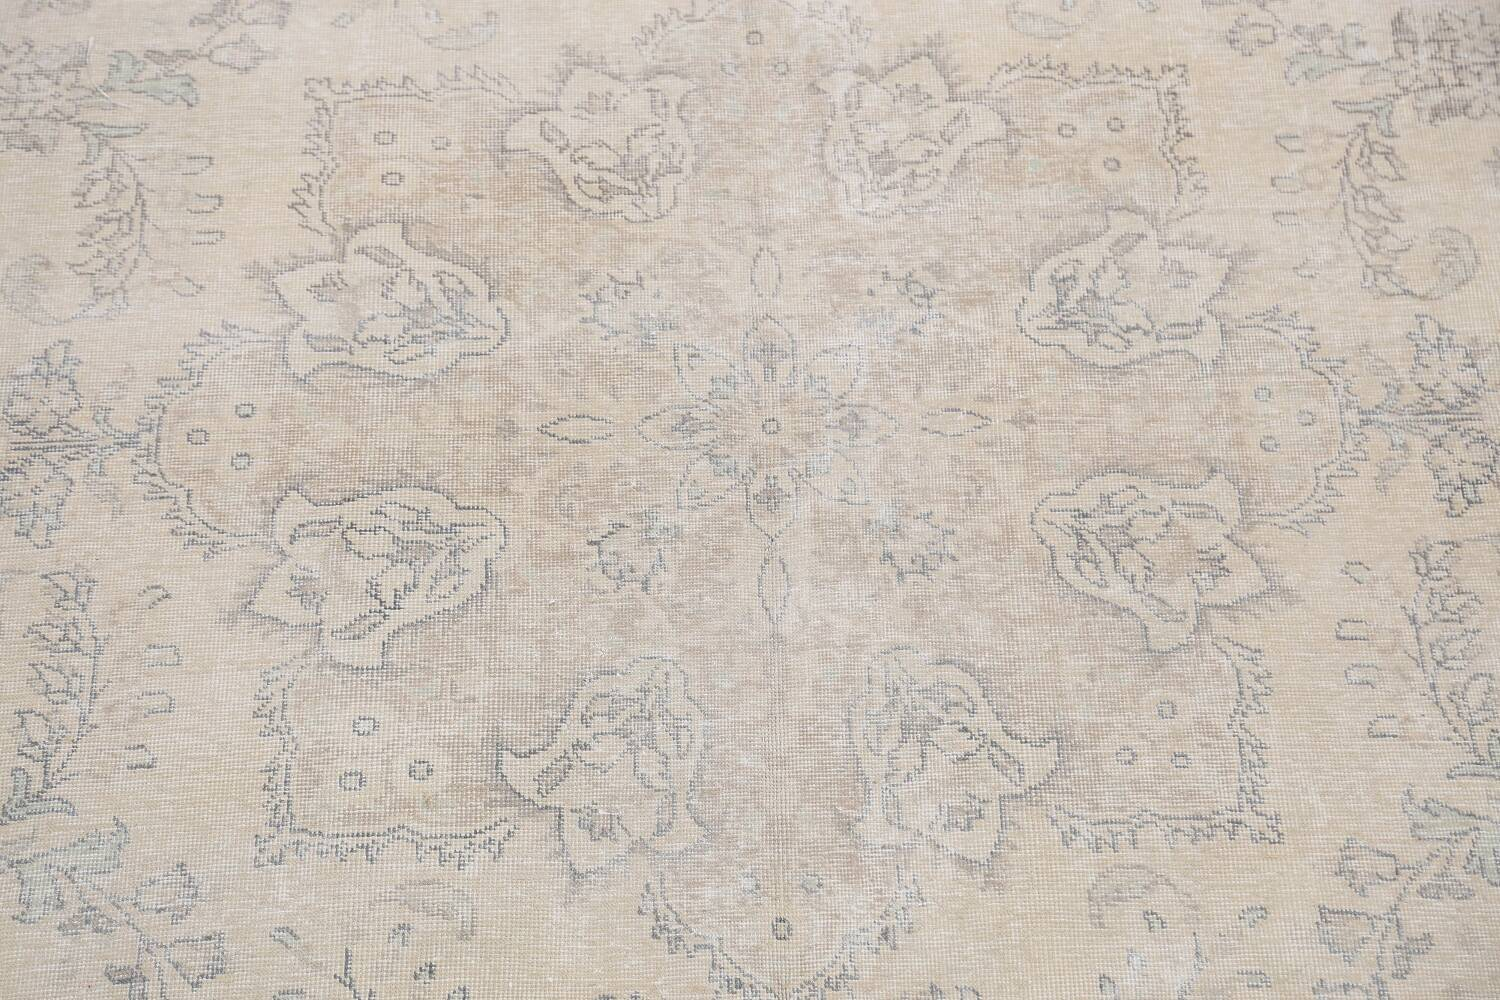 Muted Distressed Floral Tabriz Persian Area Rug 8x12 image 4